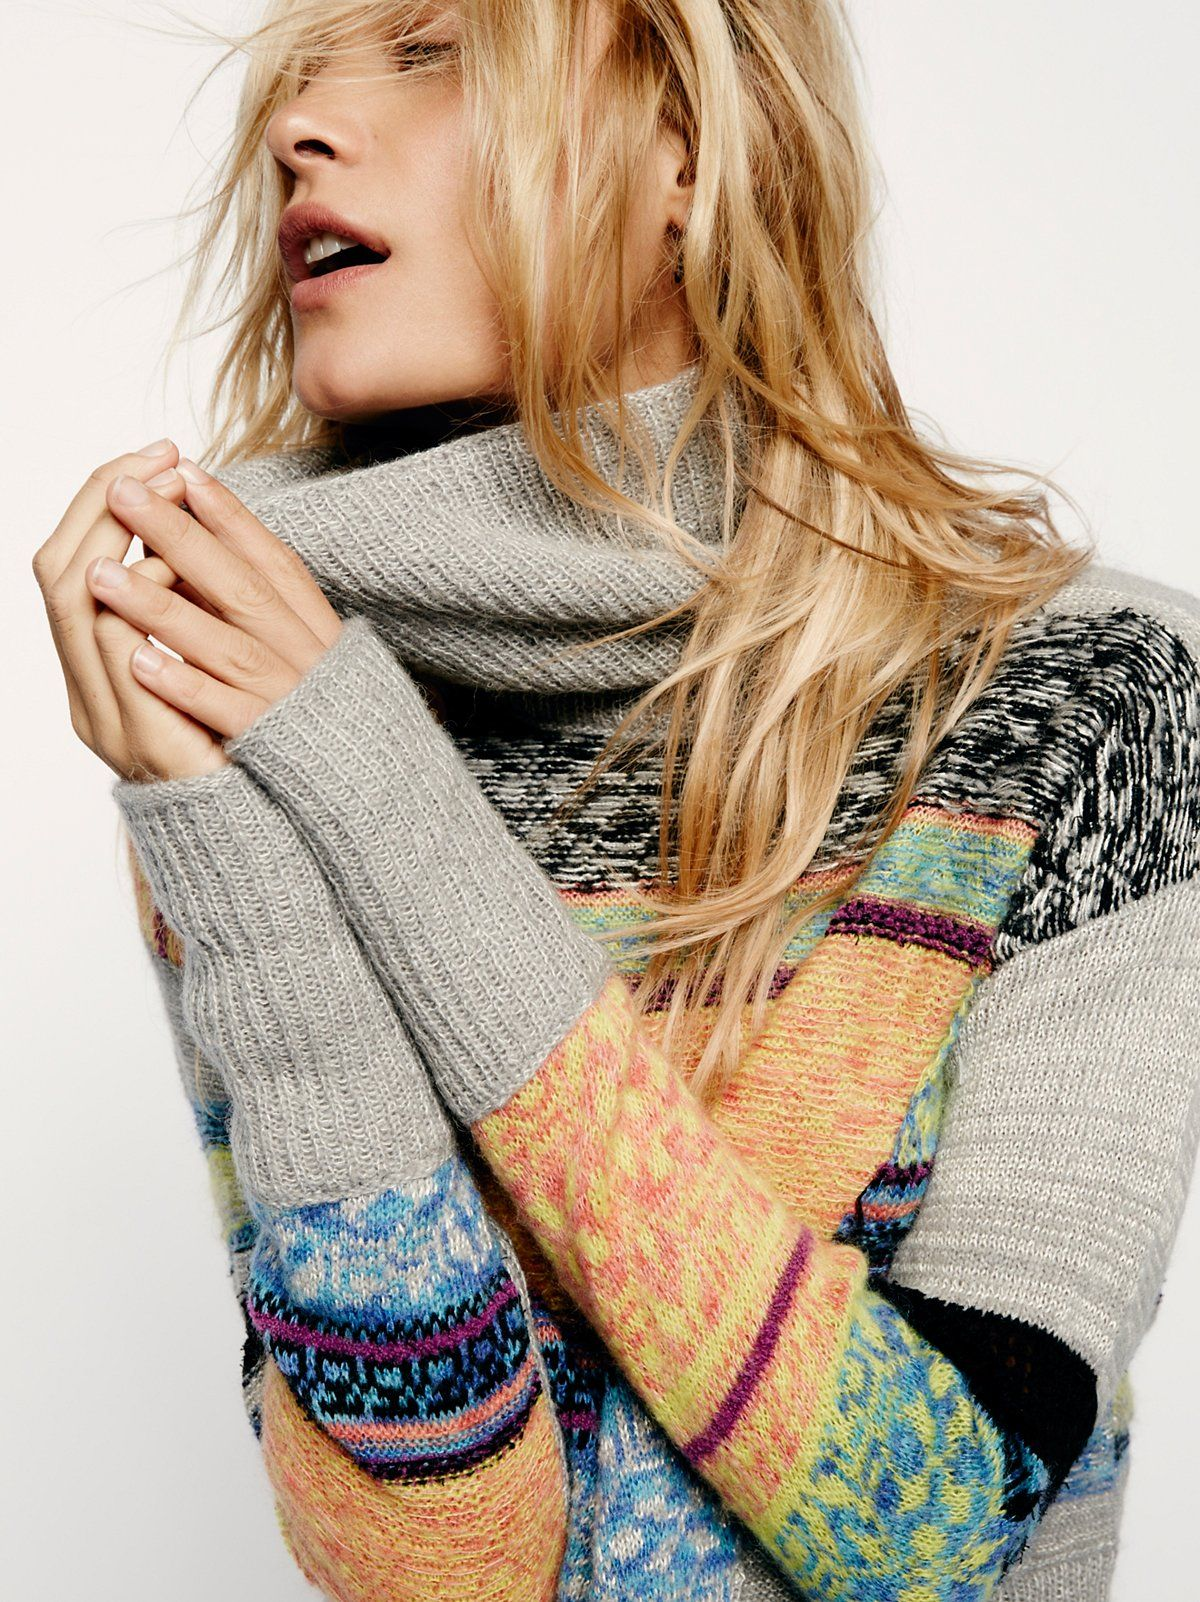 This And That Stripe Sweater | Comfy, cozy sweater featuring a drapey turtleneck and an easy fit. Pretty striped patterns perfect for the season strewn throughout.